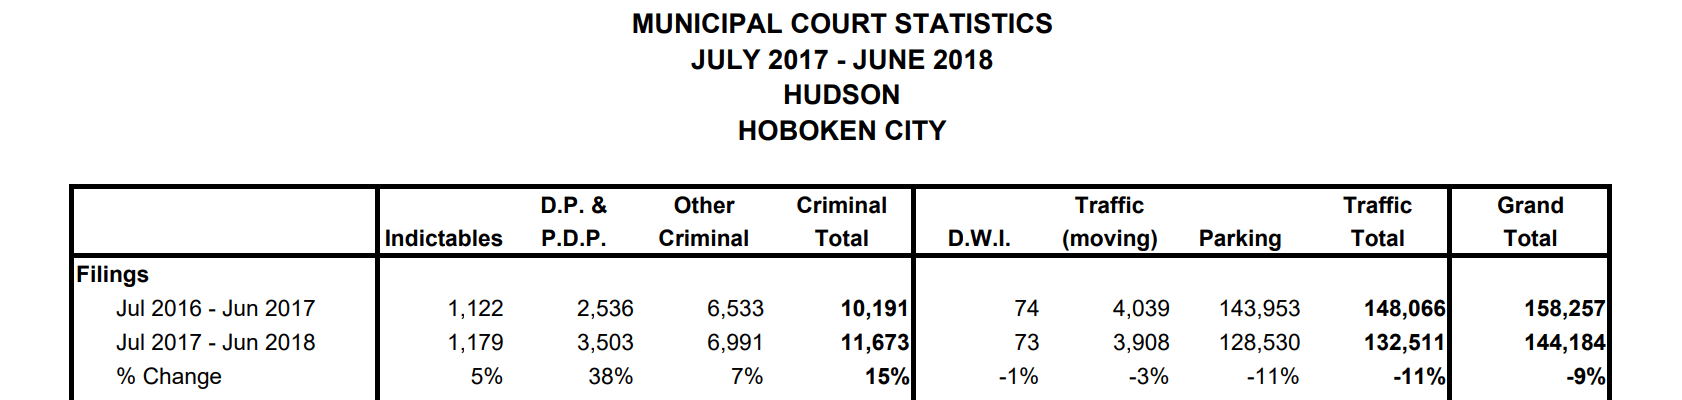 The statistics for disorderly persons offenses, indictable crimes, dwi and moving traffic offenses issued the City of Hoboken are published annually by the New Jersey Administrative Office of the Courts.